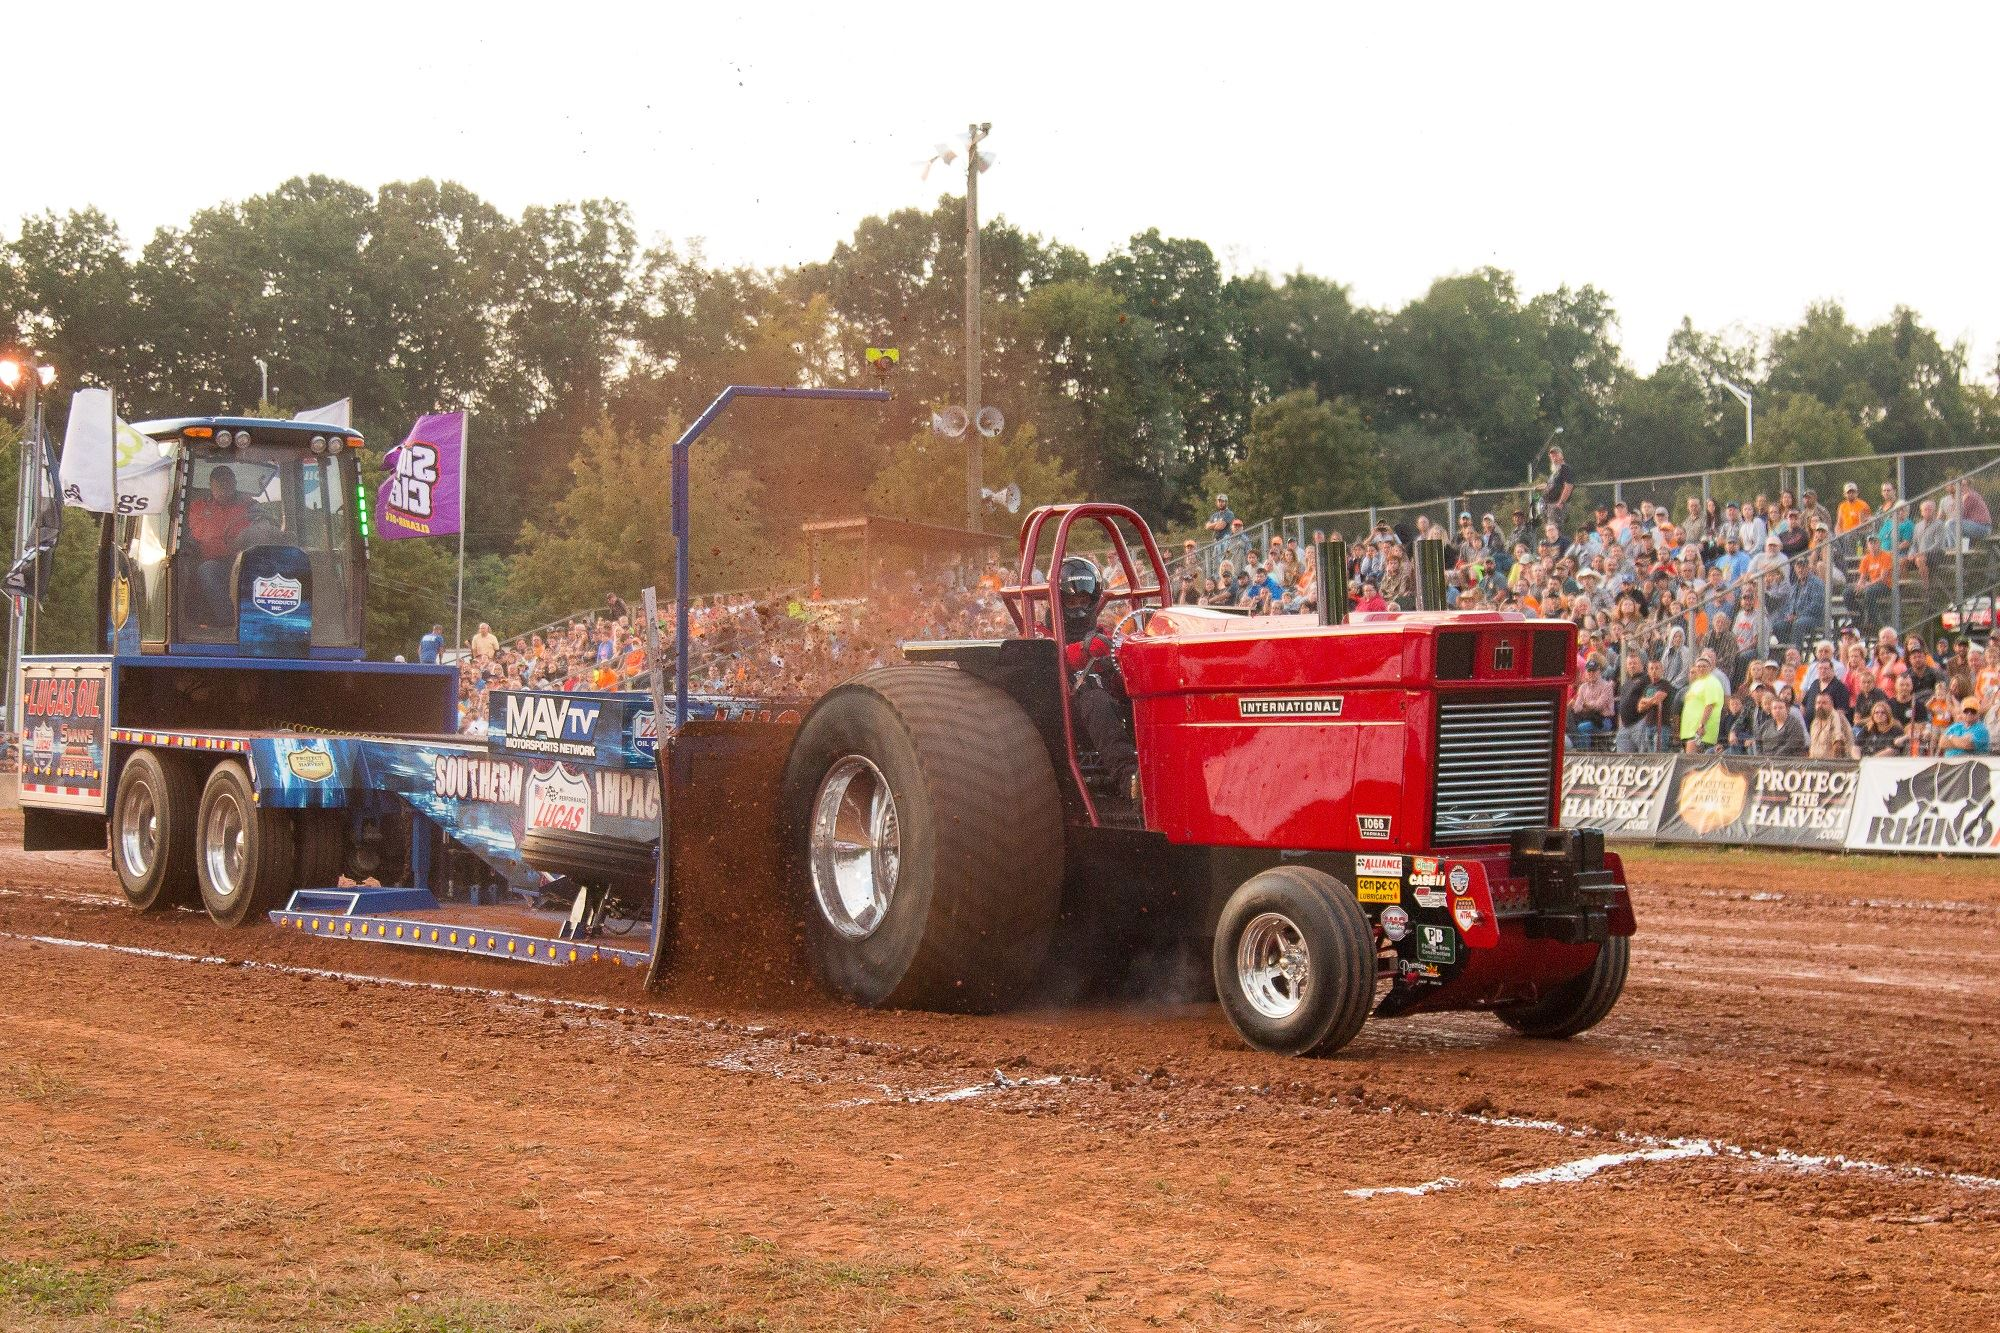 Lucas Oil Pro Pulling League Champions Tour Tractor/Truck Pull